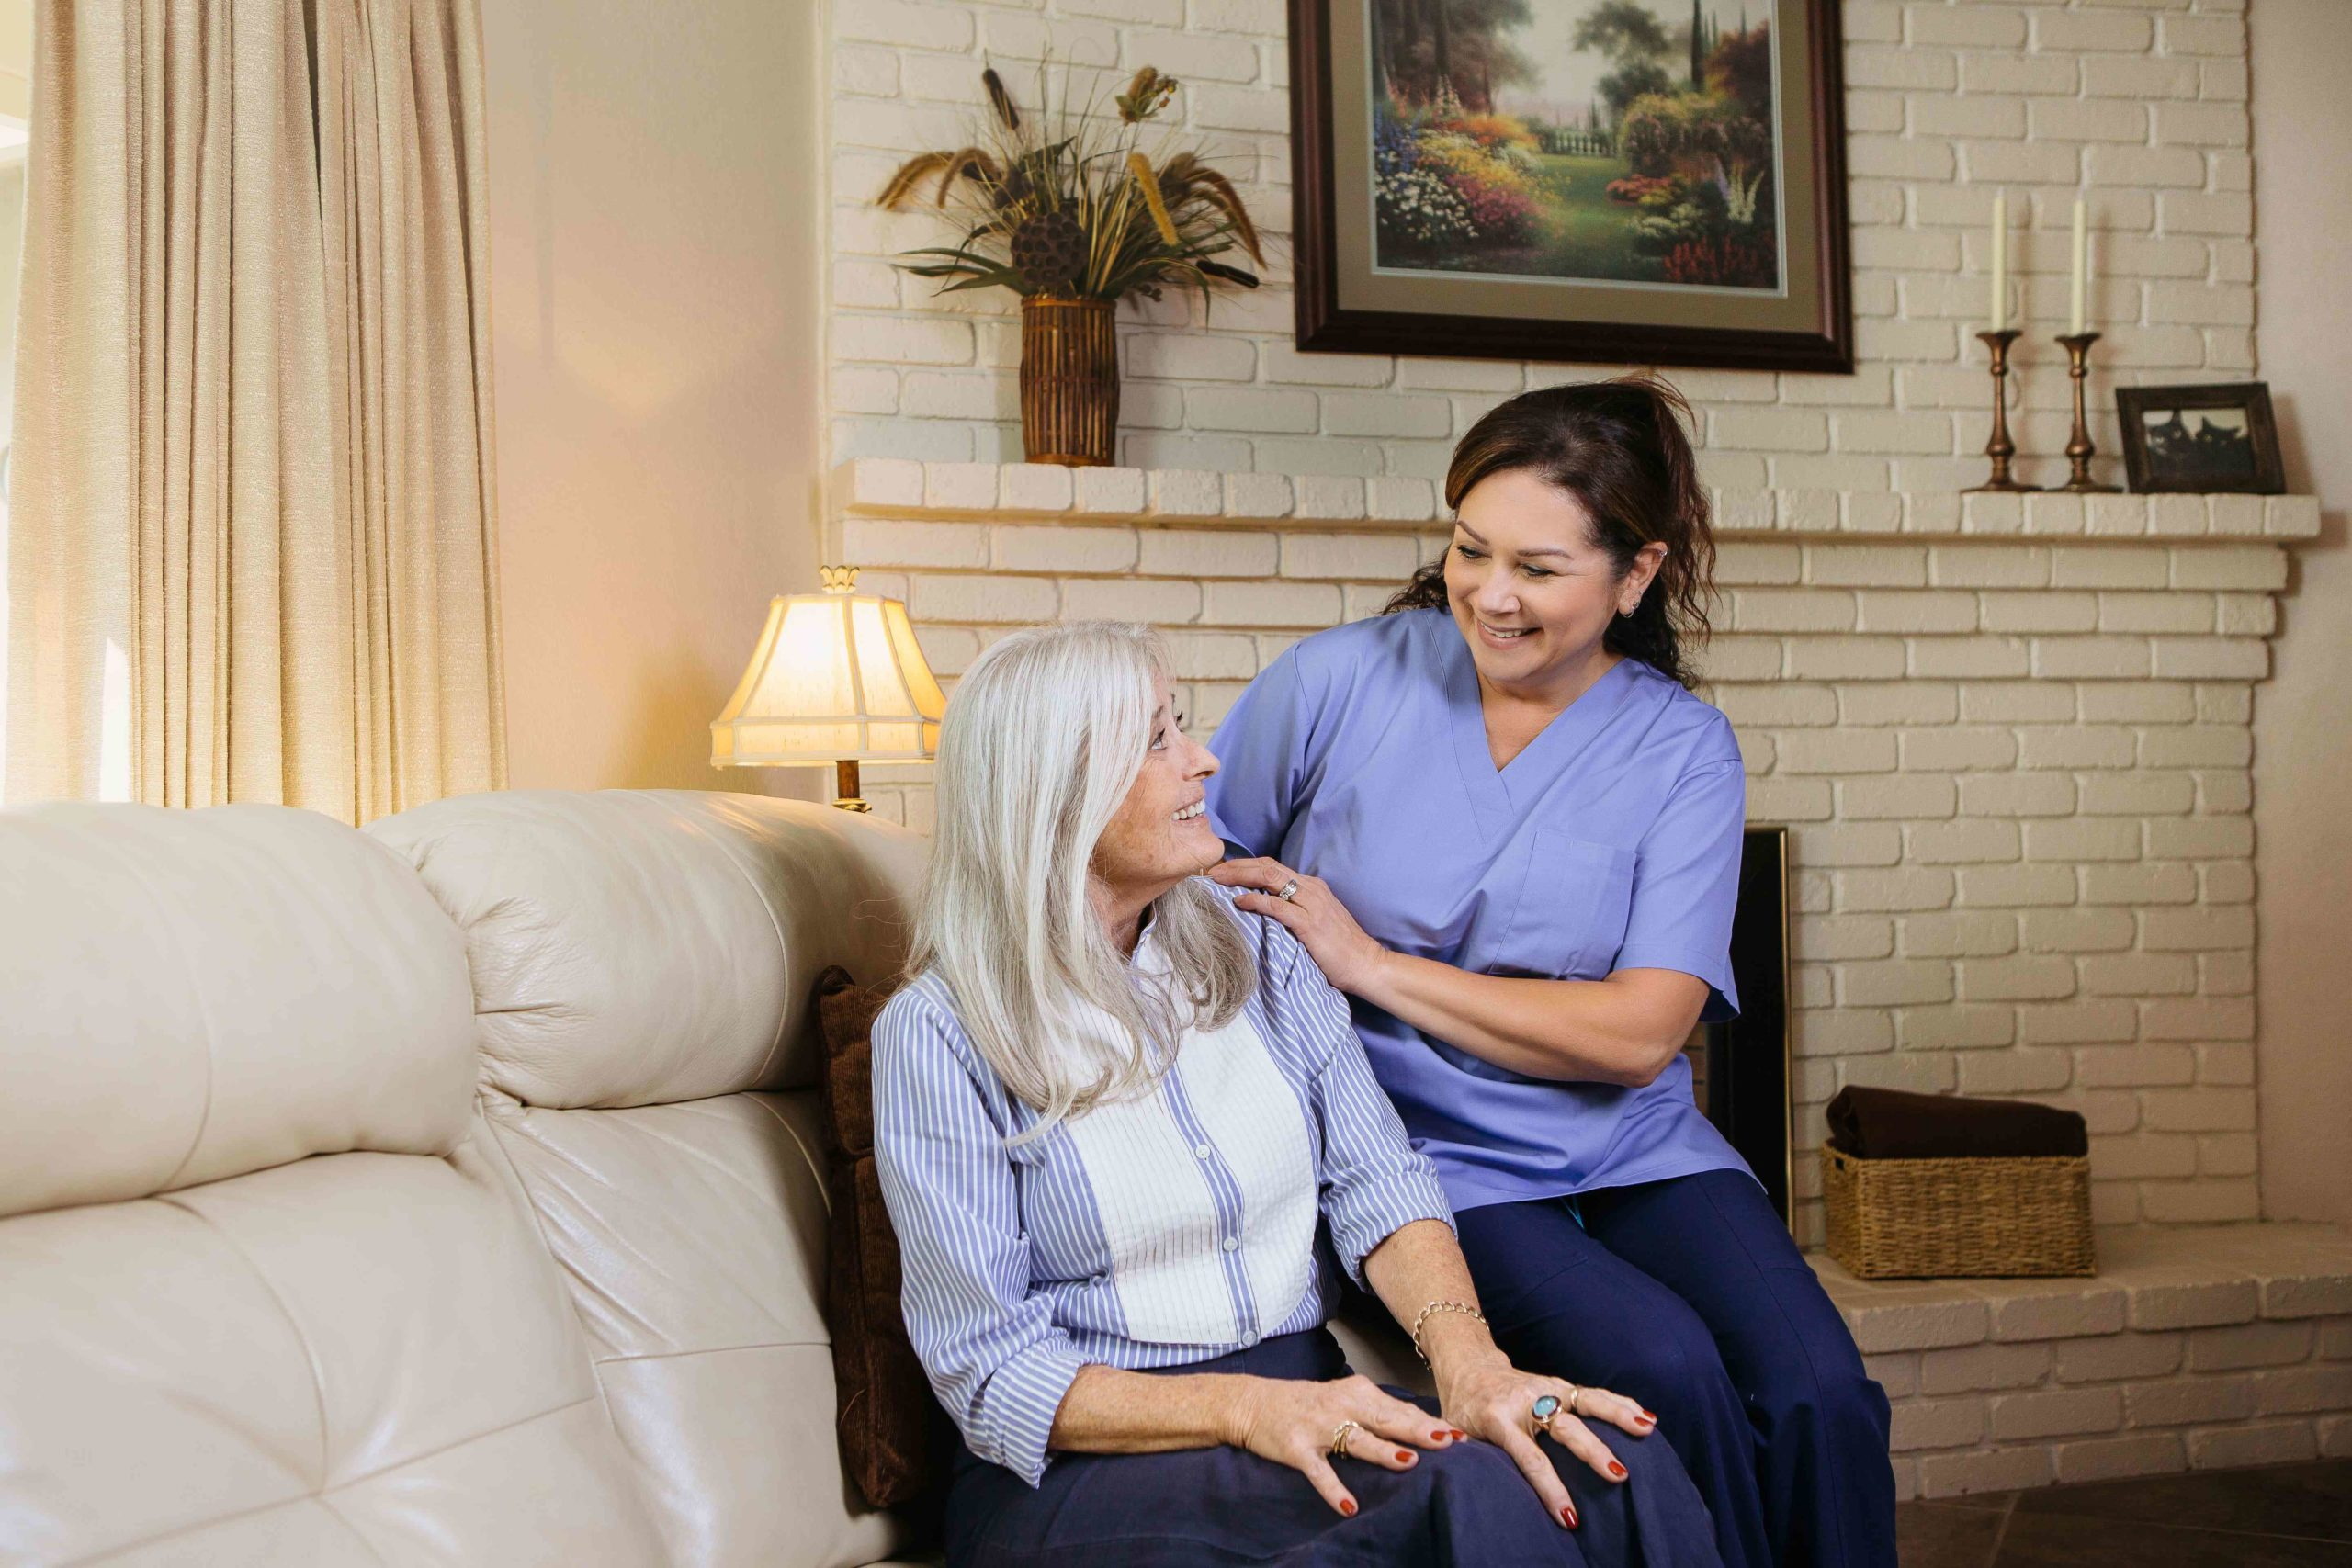 Simple Exercises Seniors Can Do at Home